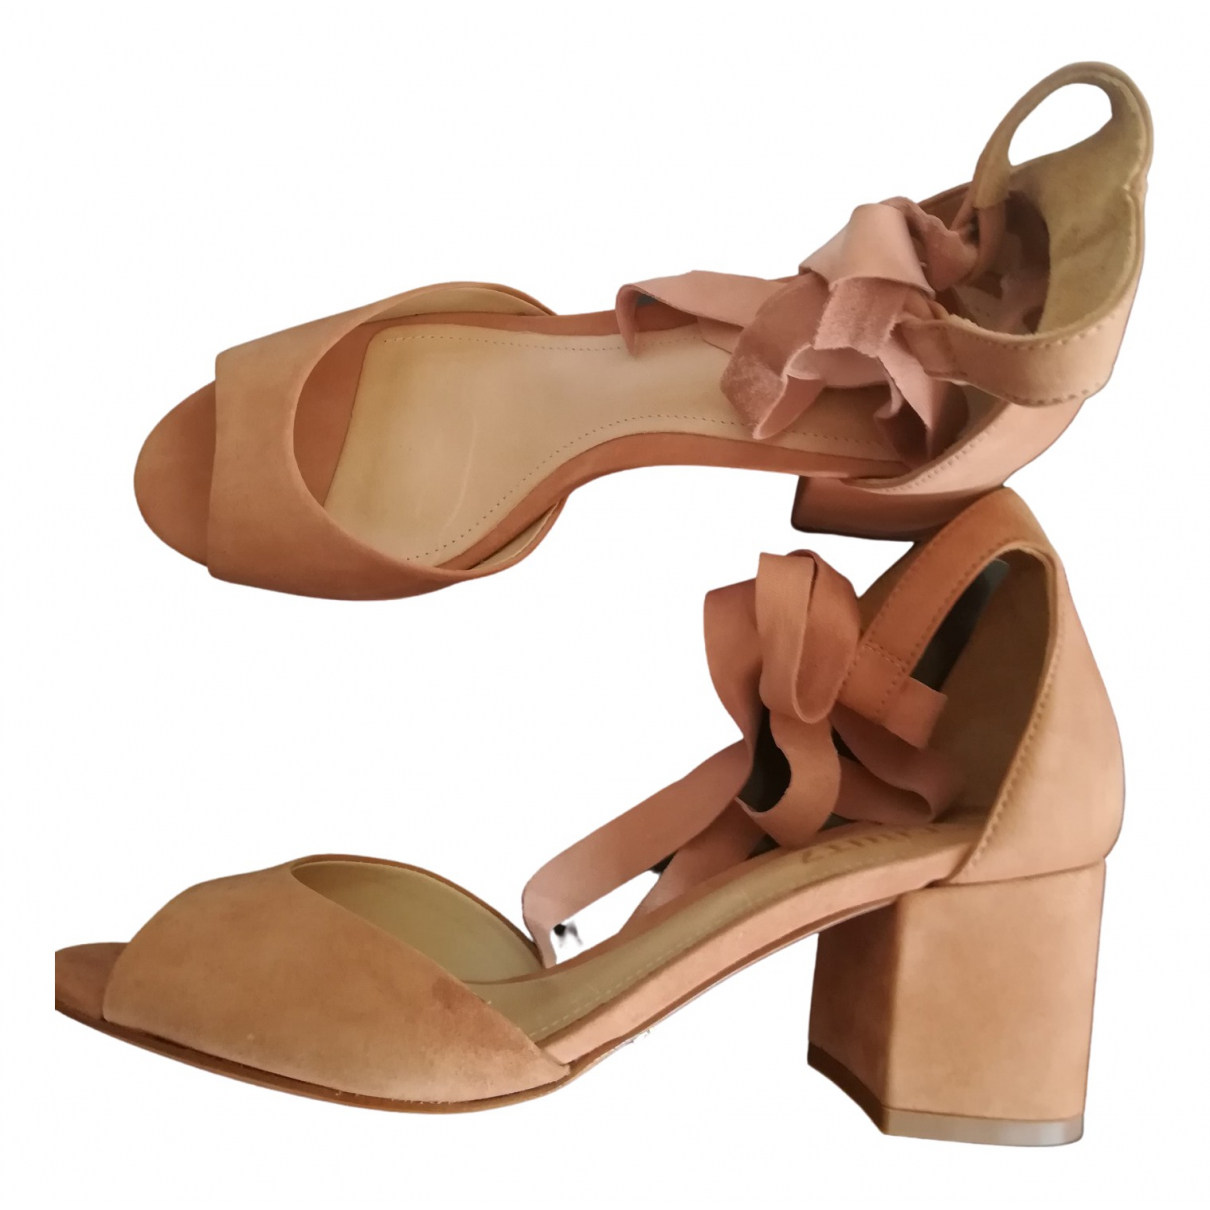 Schutz \N Beige Suede Sandals for Women 39 EU